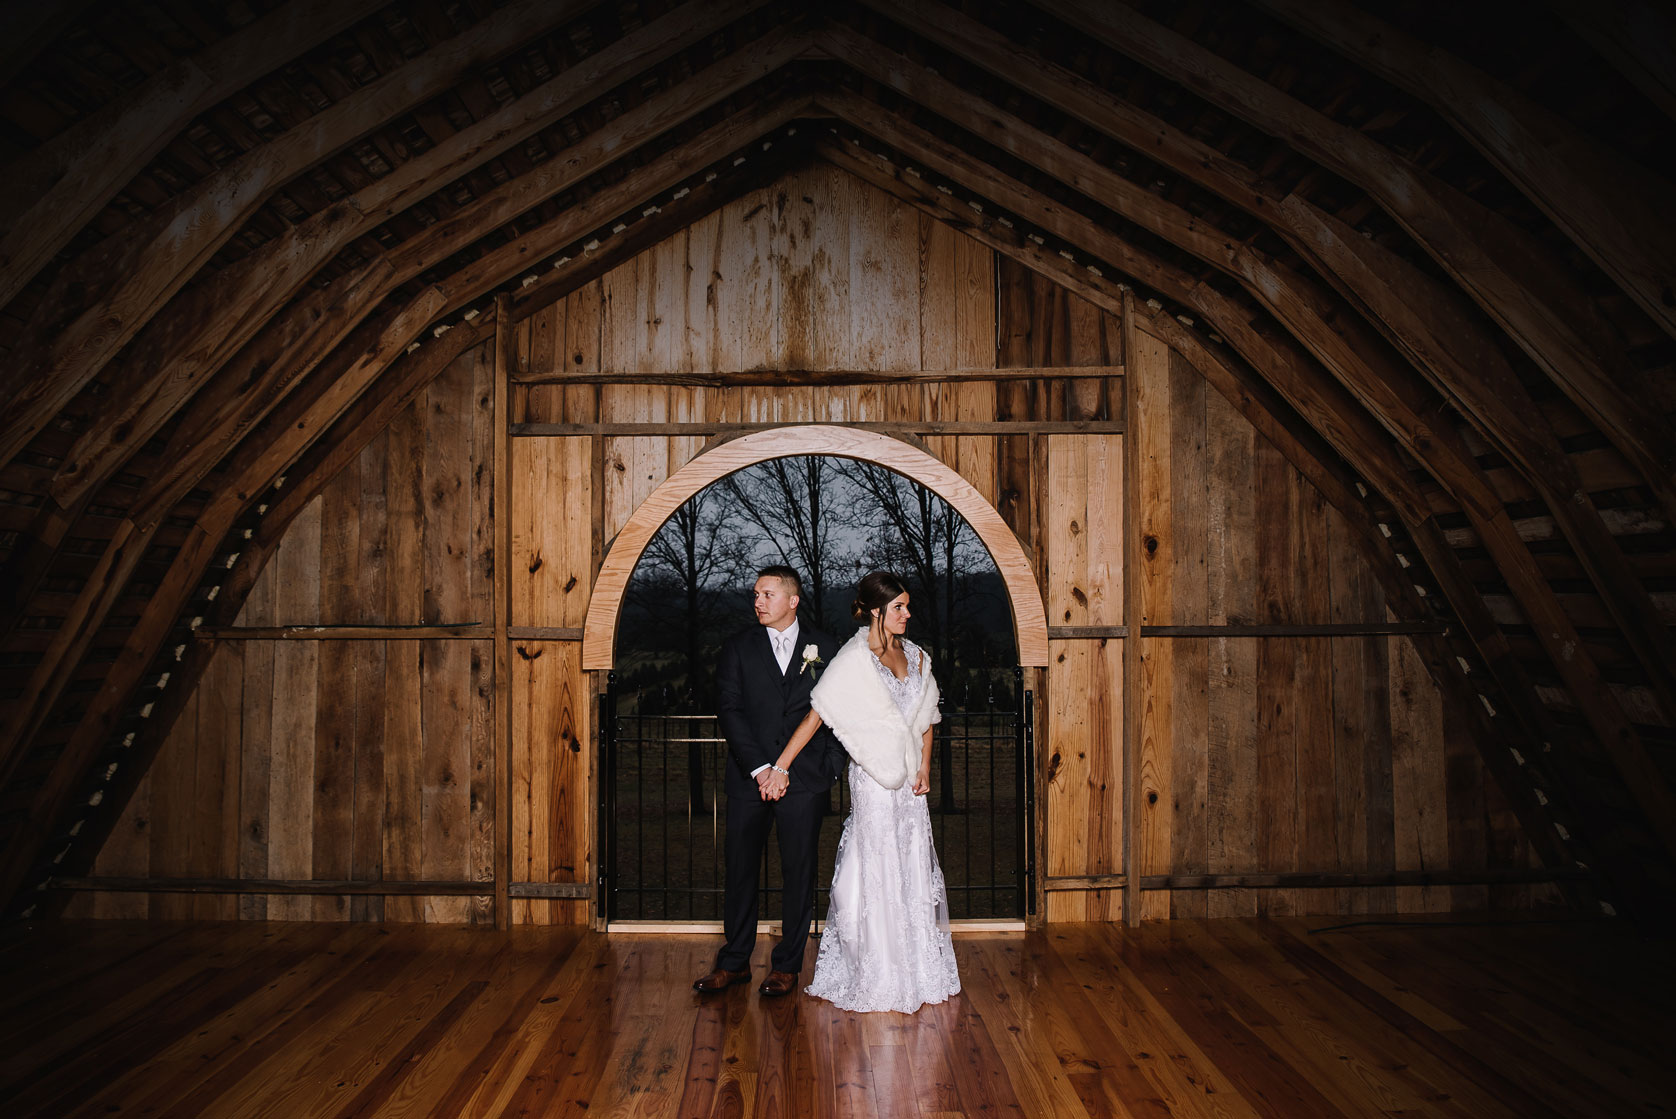 Andrea + Austin - If you are dreaming of a rustic wedding, The Stables is the perfect venue.